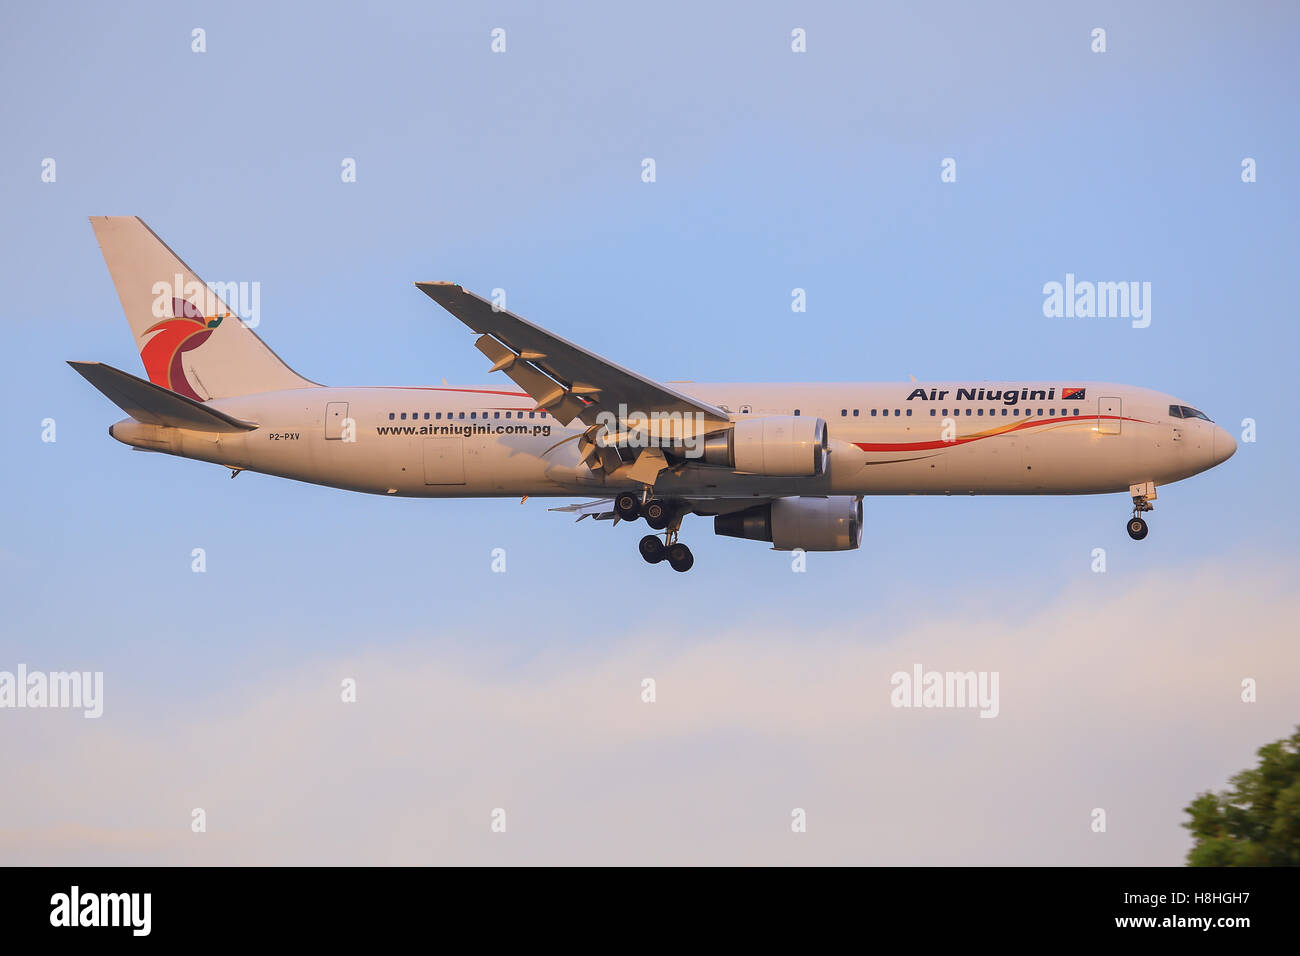 Singapore/Singapore Februar 9, 2015: Boeing 767 from air Niugini landing at Singapore Airport Stock Photo